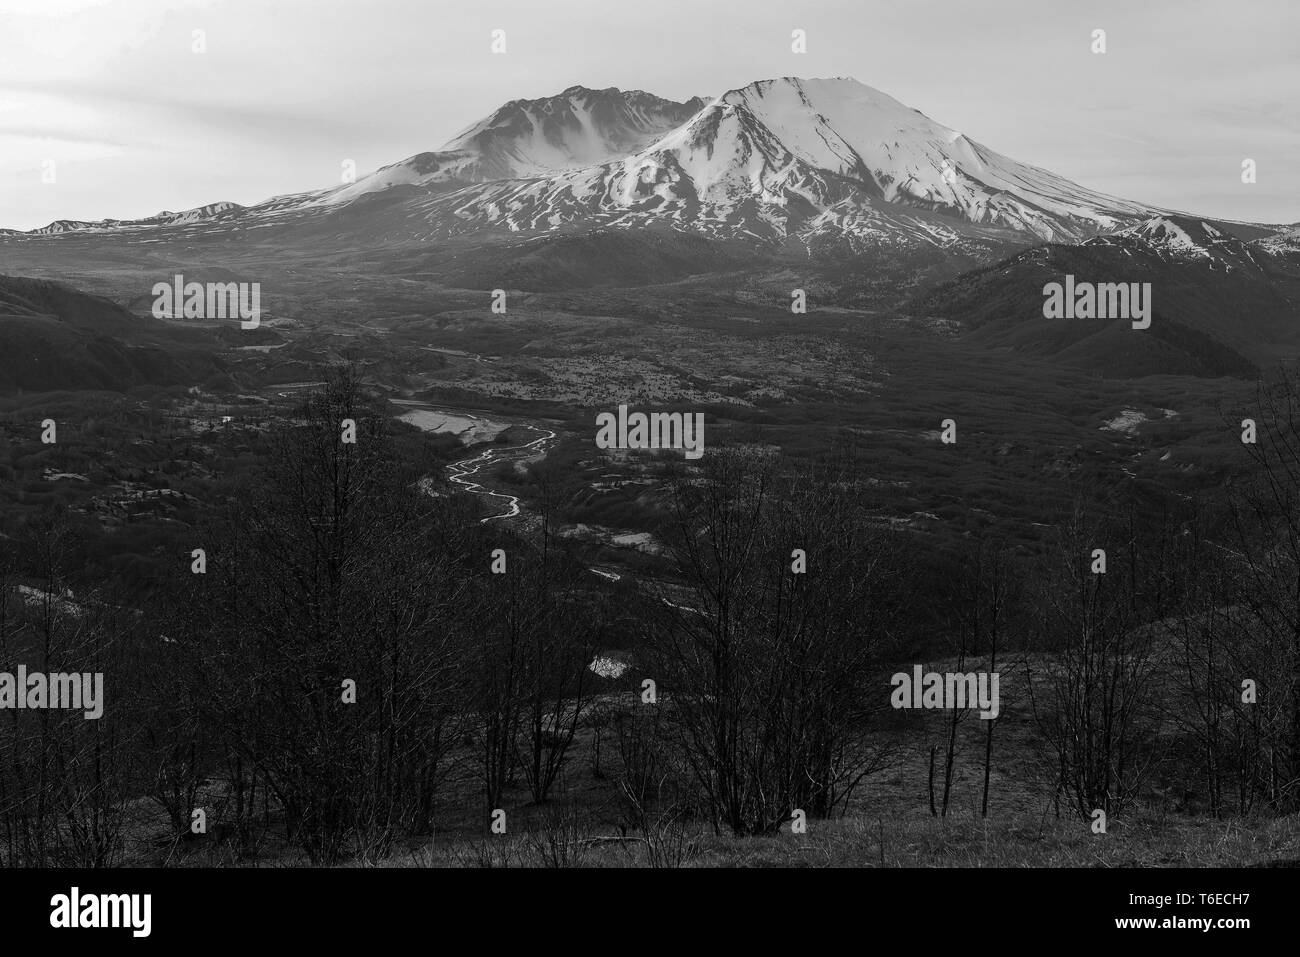 Mount Saint Helens volcano in the Cascade Mountains, Washington State USA - Stock Image